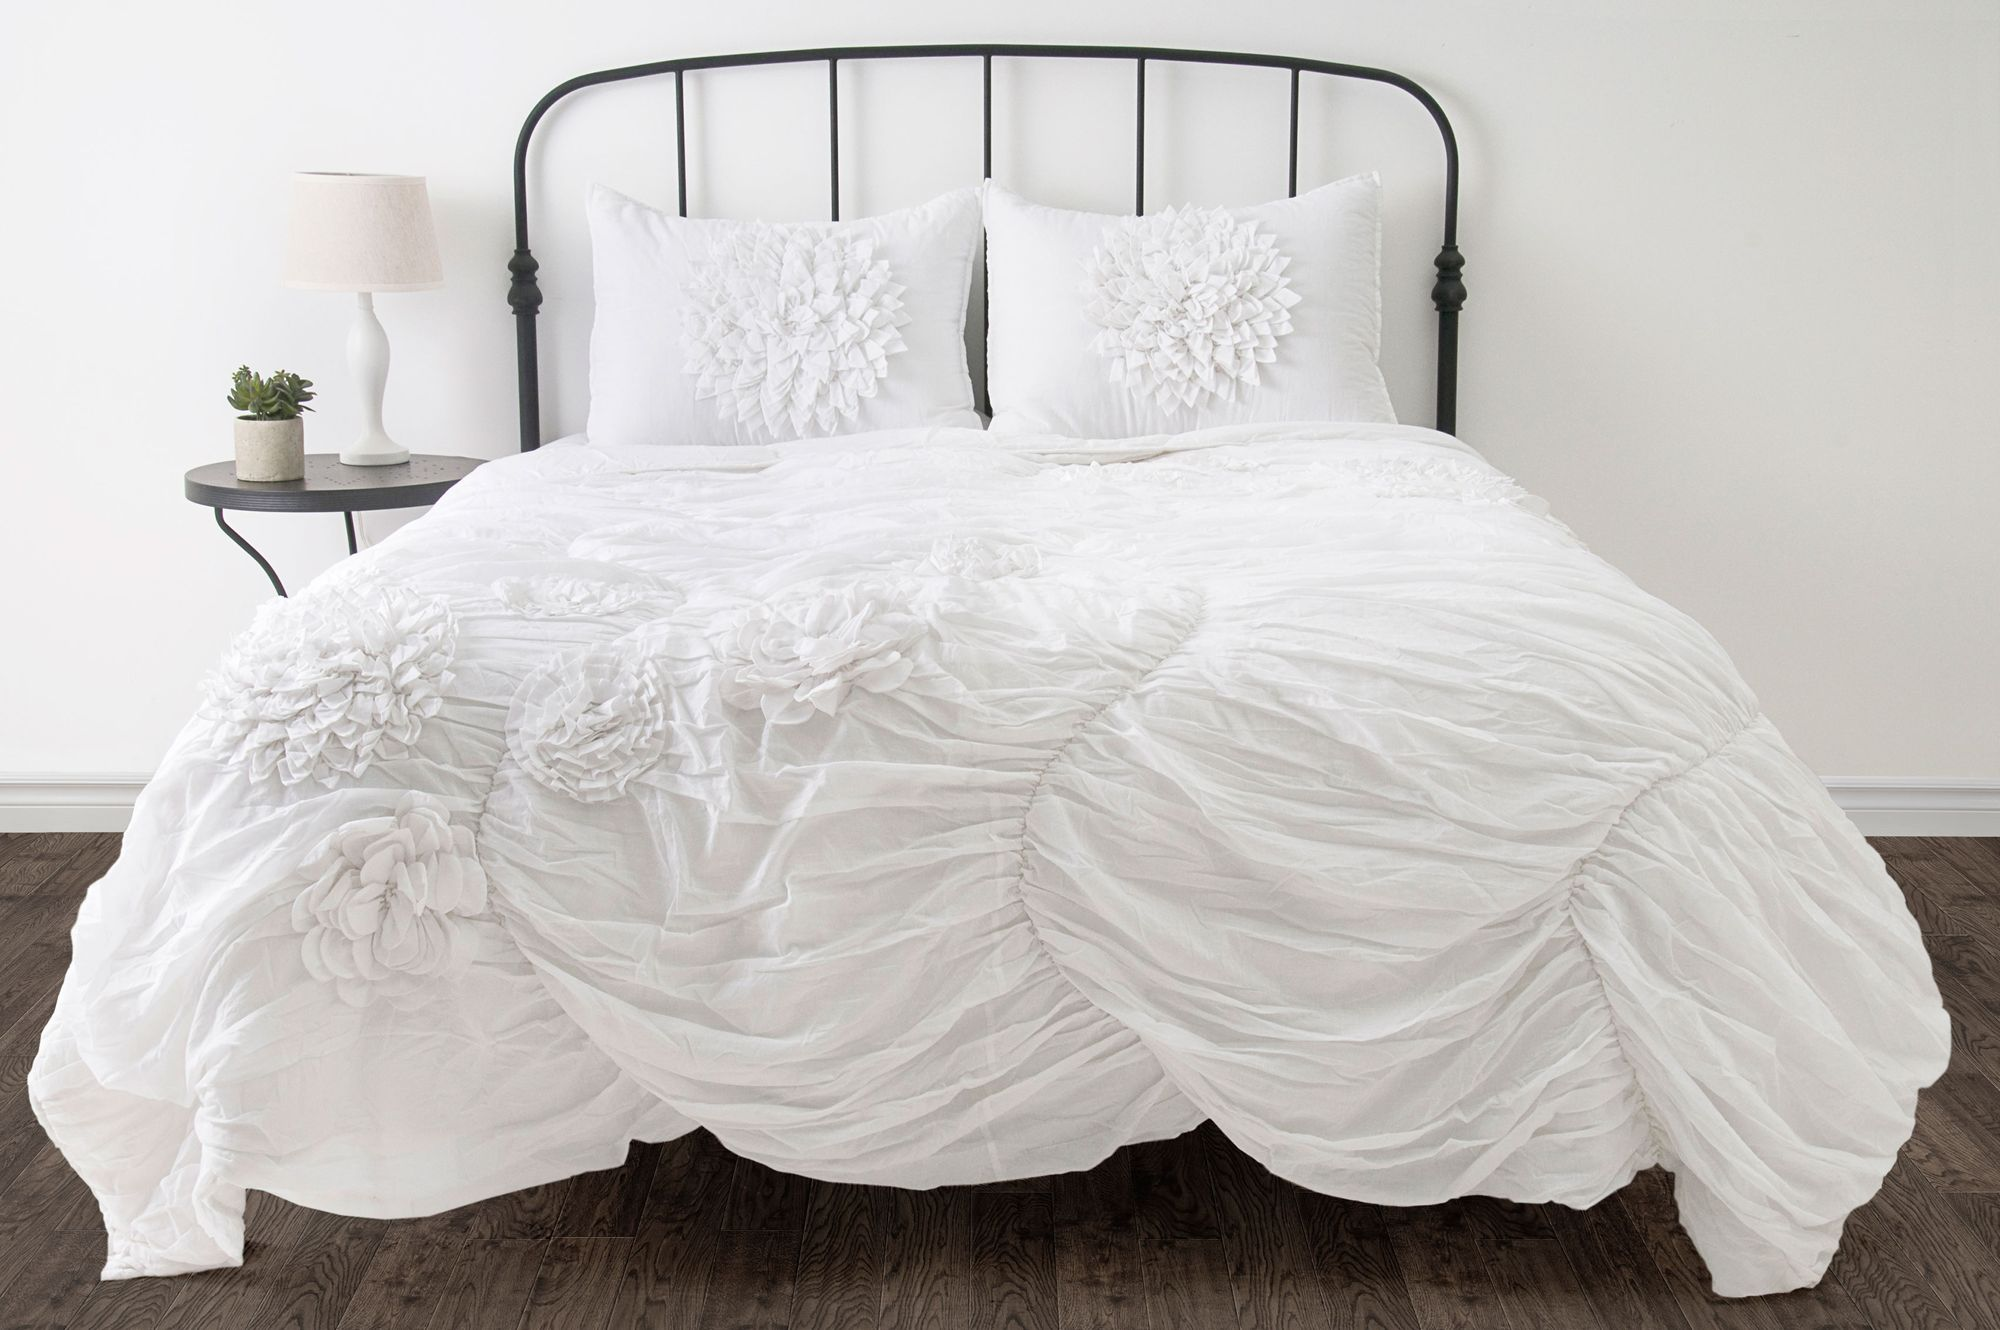 Hush Ruched Comforter Bedding Sets